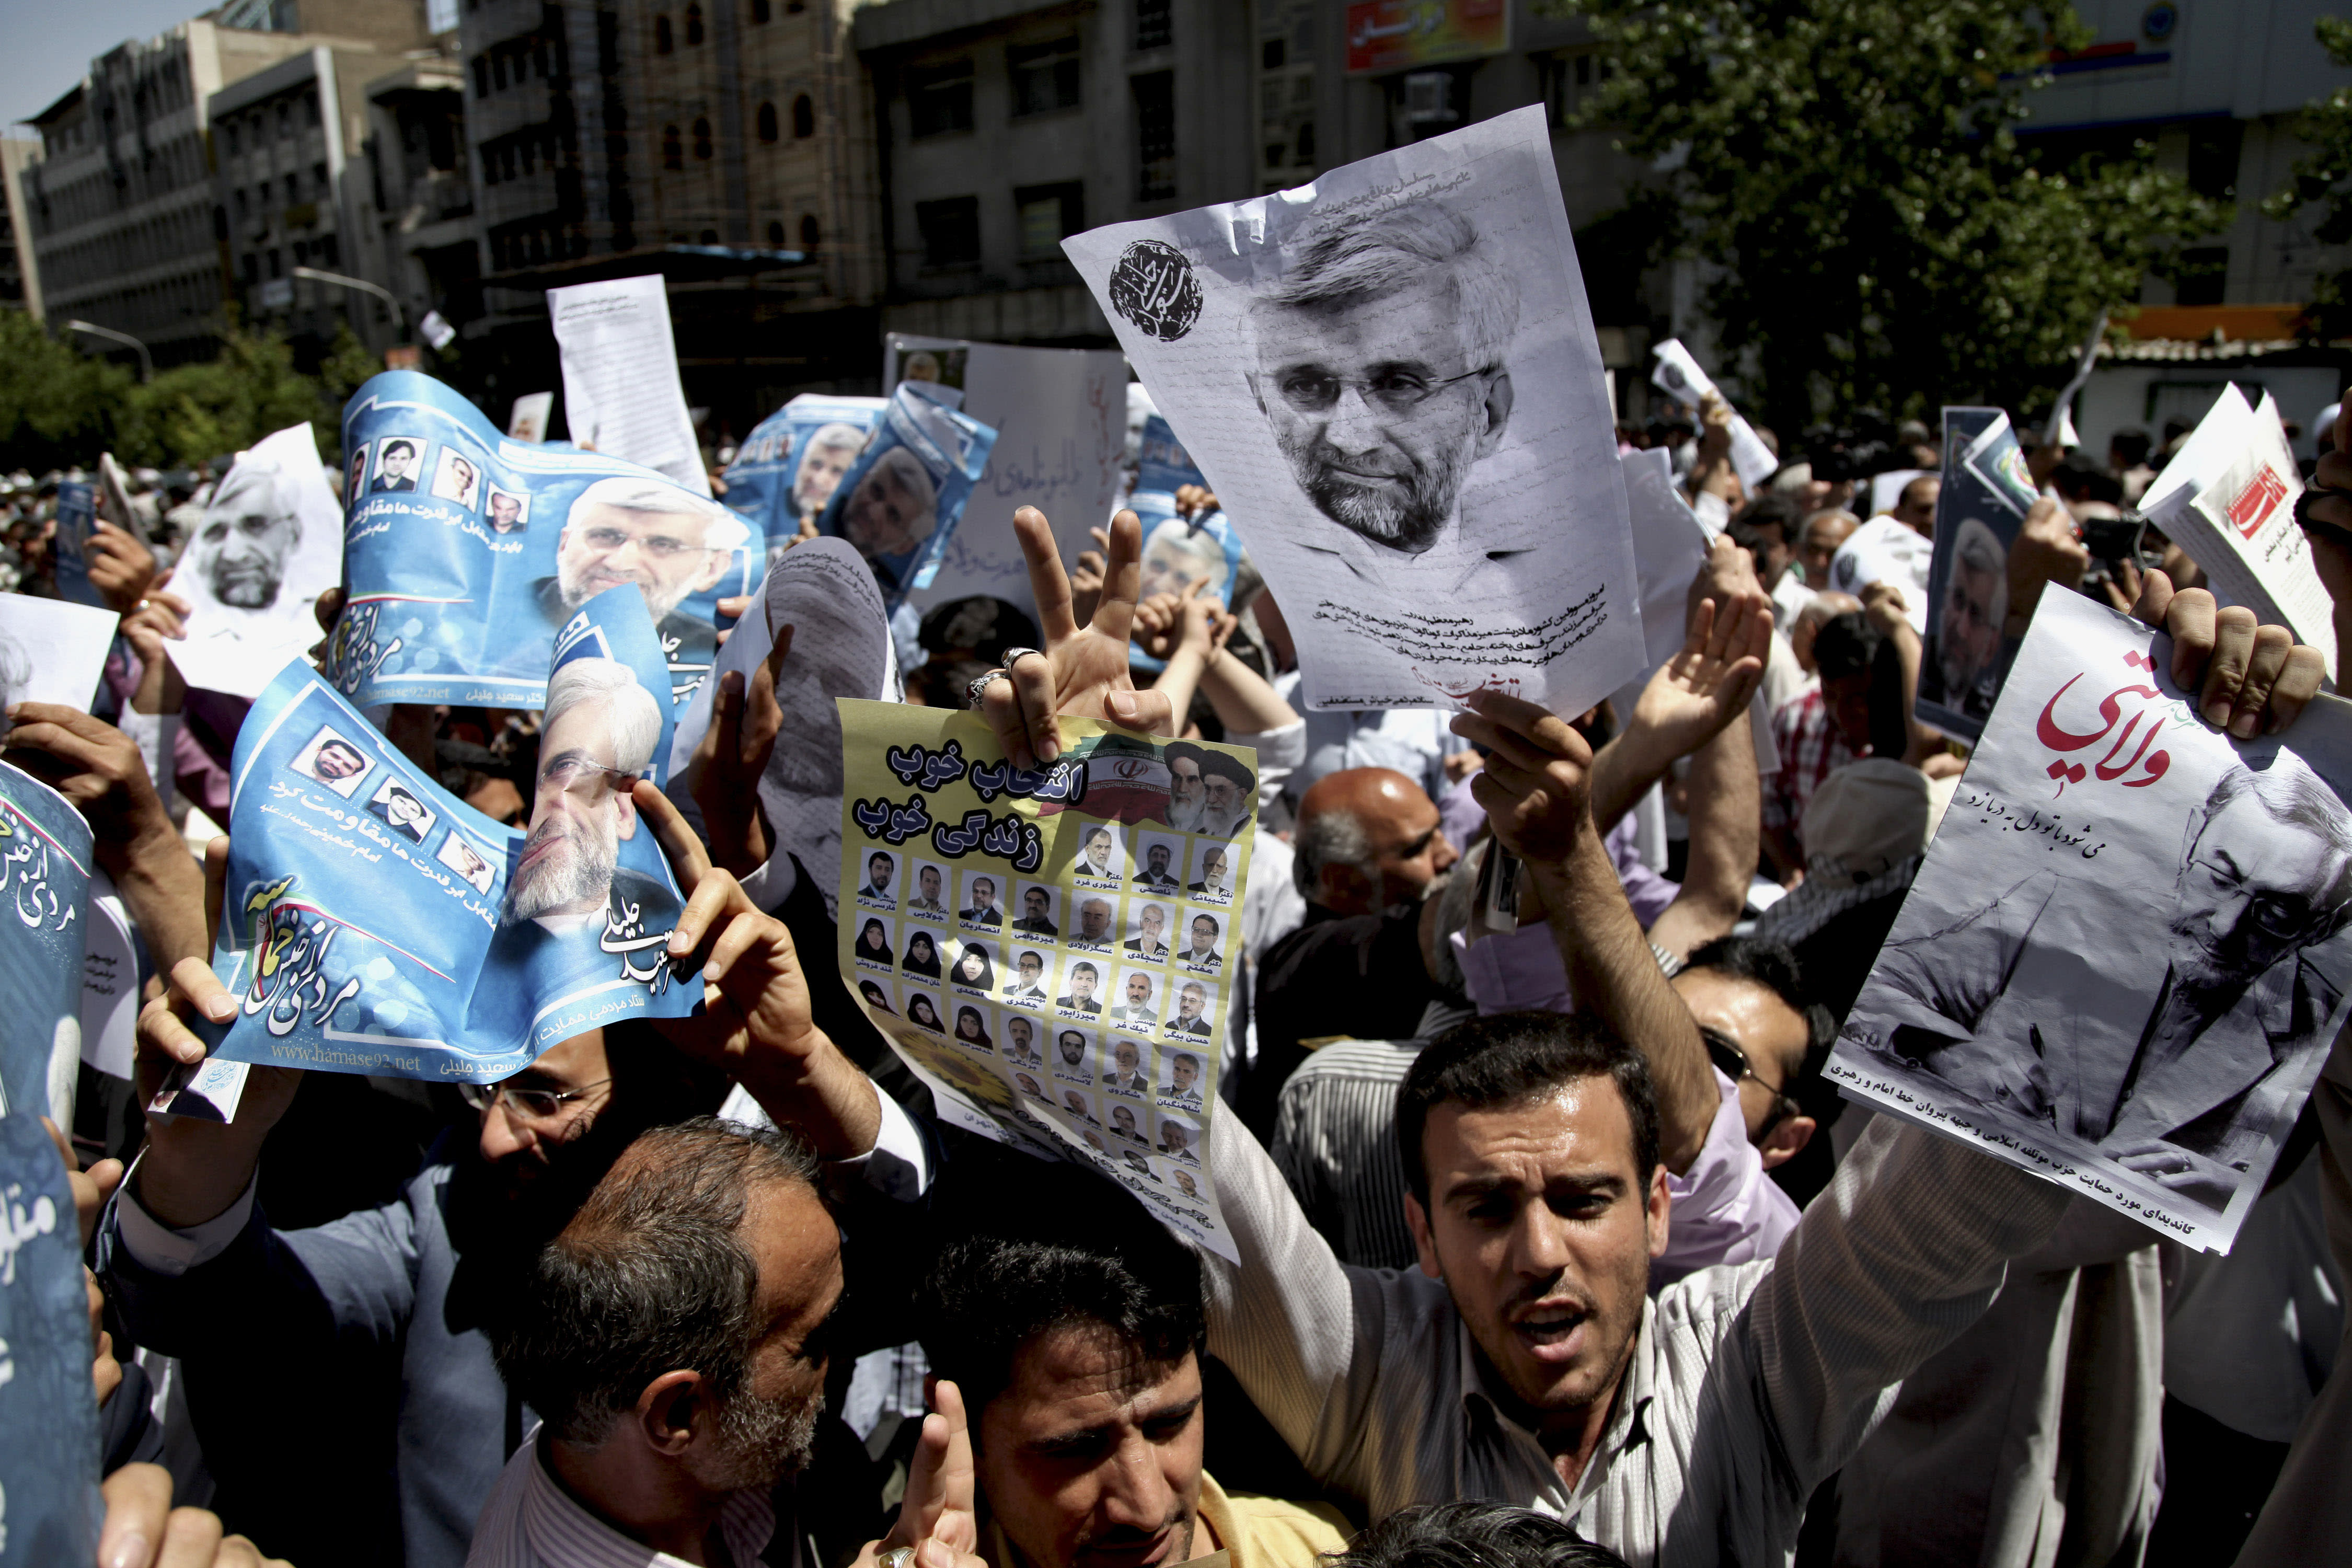 Supporters of the presidential candidates, Ali Akbar Velayati, shown in the poster at right, and Saeed Jalili, center on the poster, attend a street campaign after Friday prayers in Tehran, Iran, Friday, June 7, 2013. Iranian Presidential election will be held on June 14, 2013. (AP Photo/Ebrahim Noroozi)